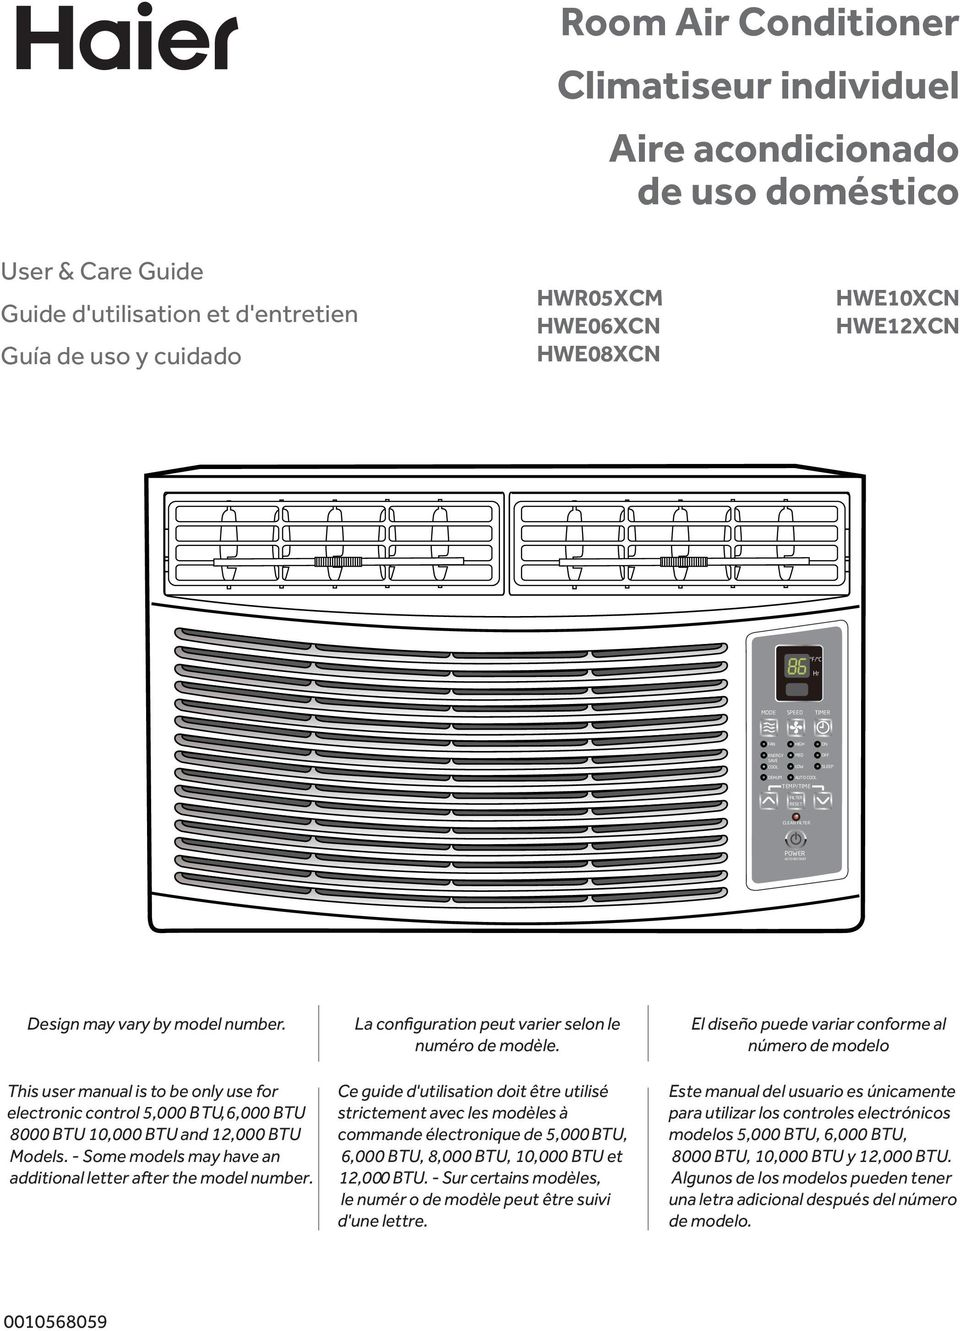 This user manual is to be only use for electronic control 5,000 BTU, 6,000 BTU 8000 BTU 10,000 BTU and 12,000 BTU Models. - Some models may have an additional letter after the model number.